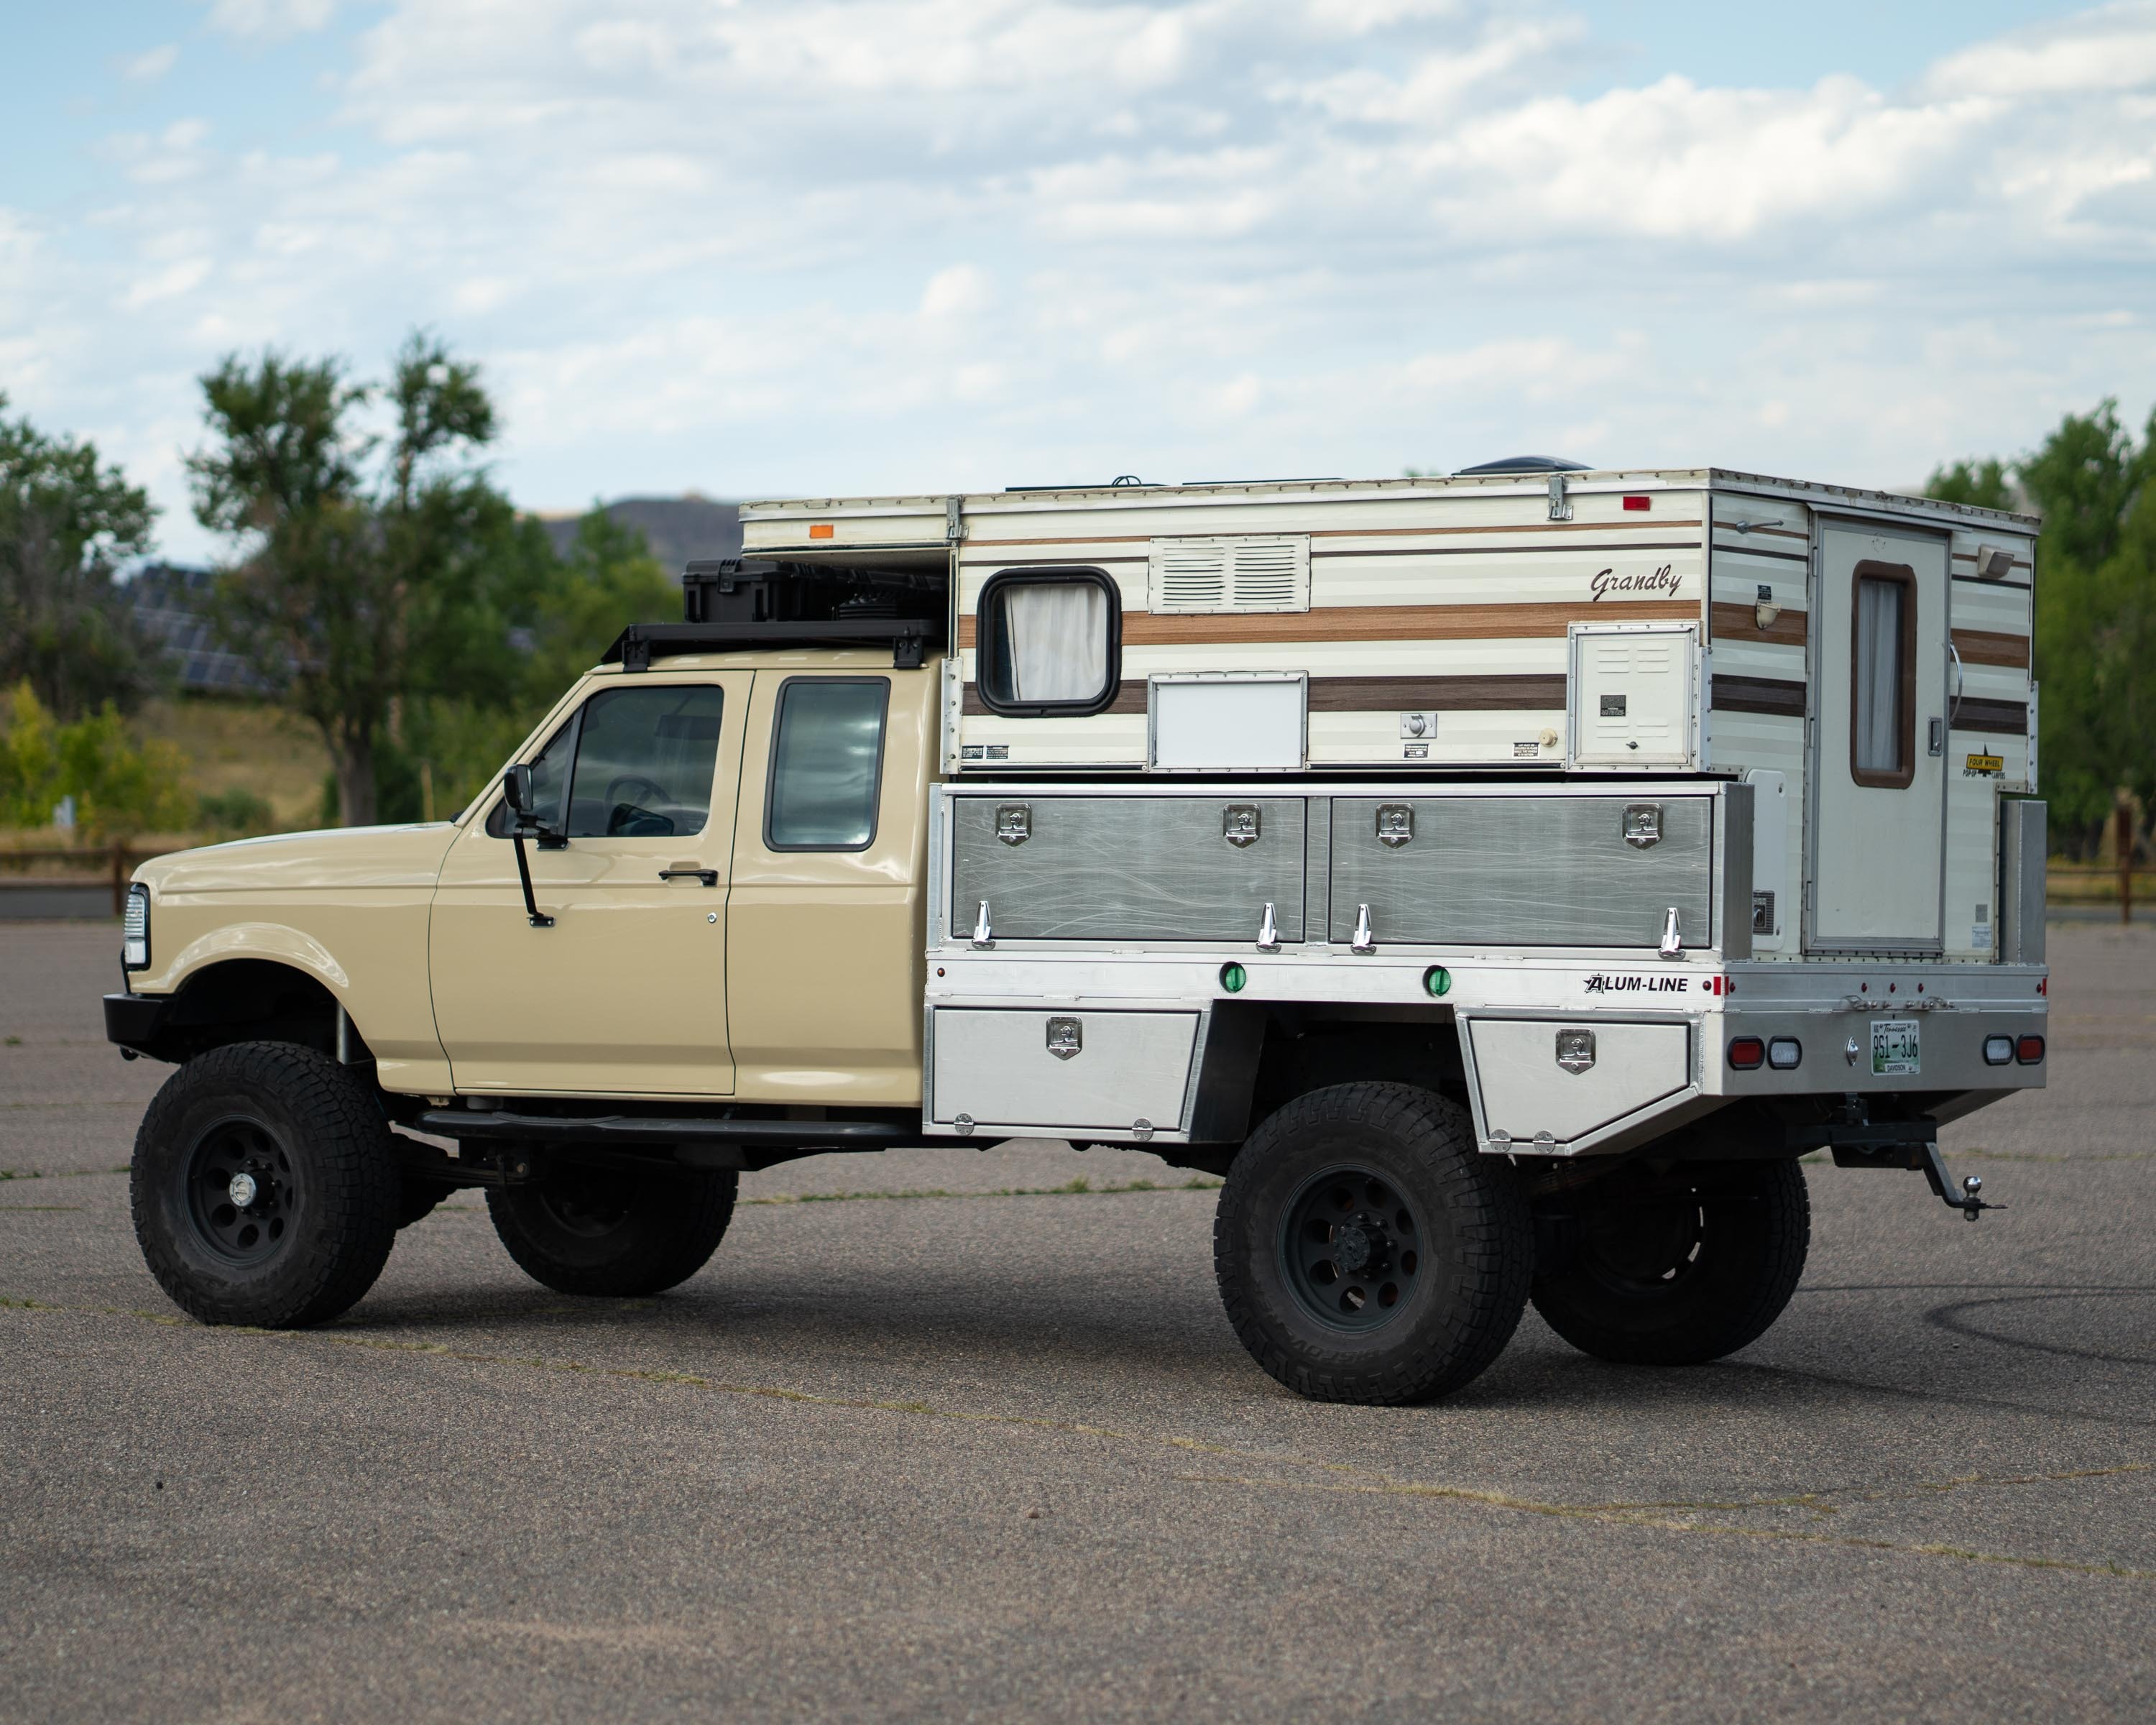 This 45 000 1995 Ford F 250 Camper Truck Is A Backwoods Adventurer S Dream